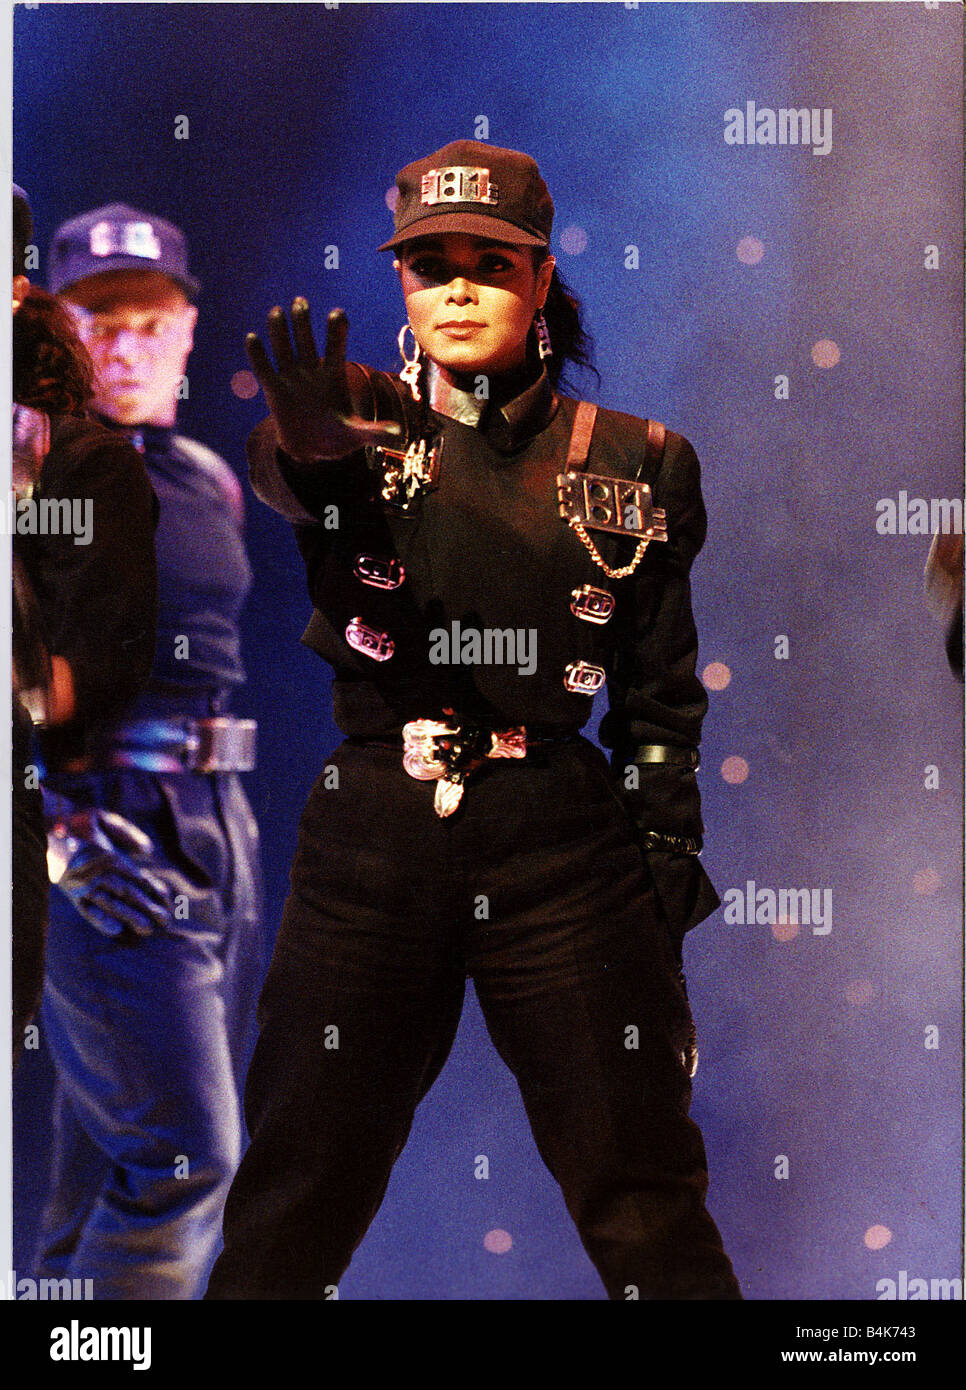 Janet Jackson on stage right arm outstretched Wearing baseball cap dbase  1989 4d1b10010c7